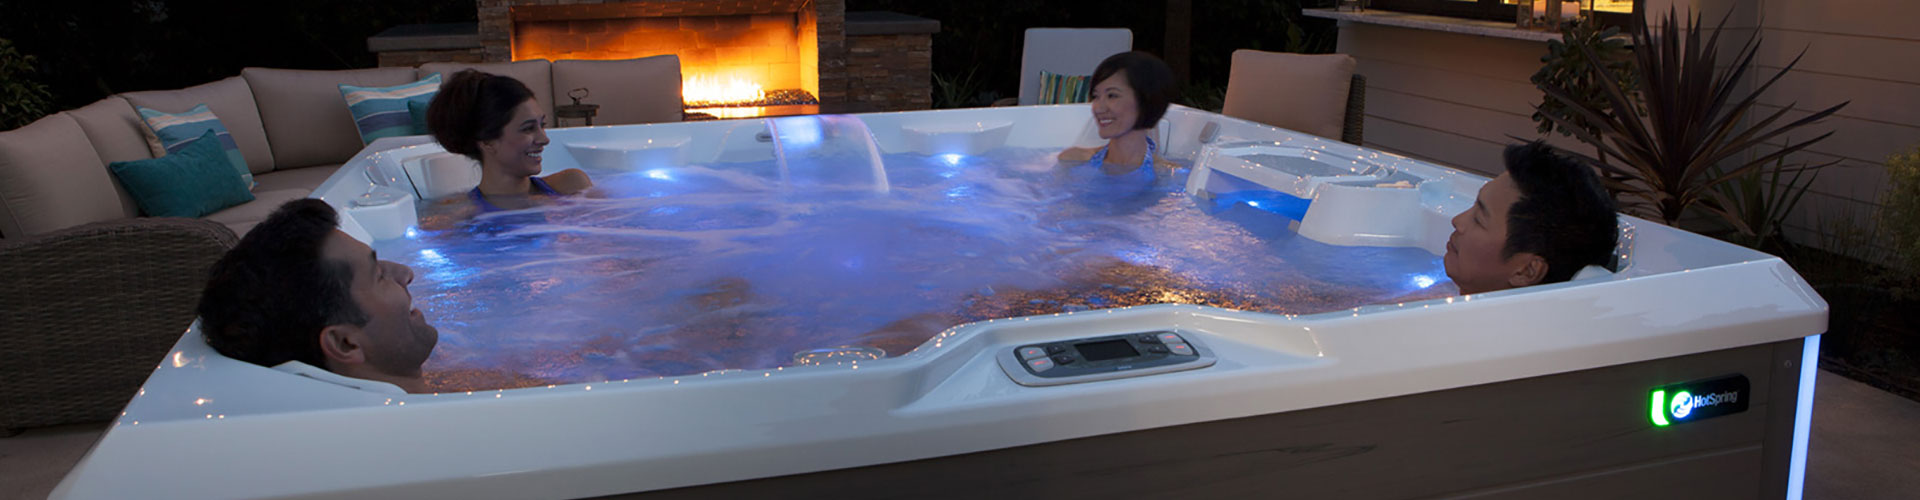 St Louis Hot Tub Dealer Says to Build Relaxation into a Busy Life with a Backyard Spa